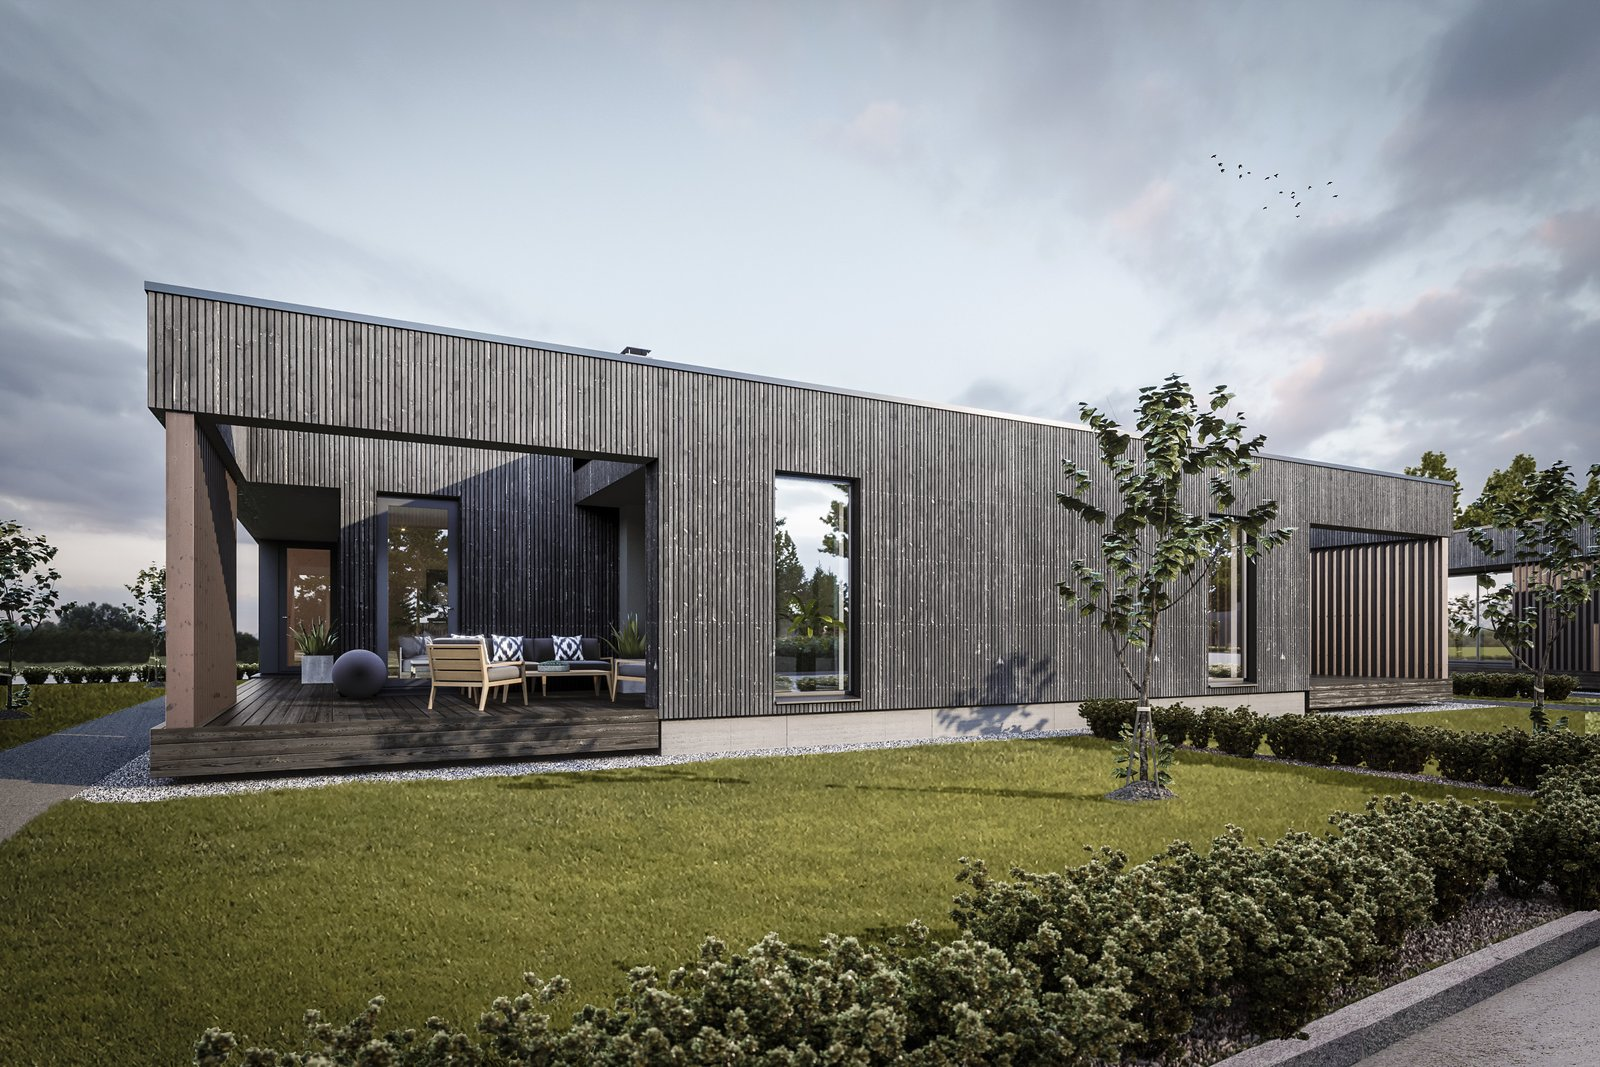 Cross laminated timber was a natural eco-friendly choice.  Tuusula by Alvardag